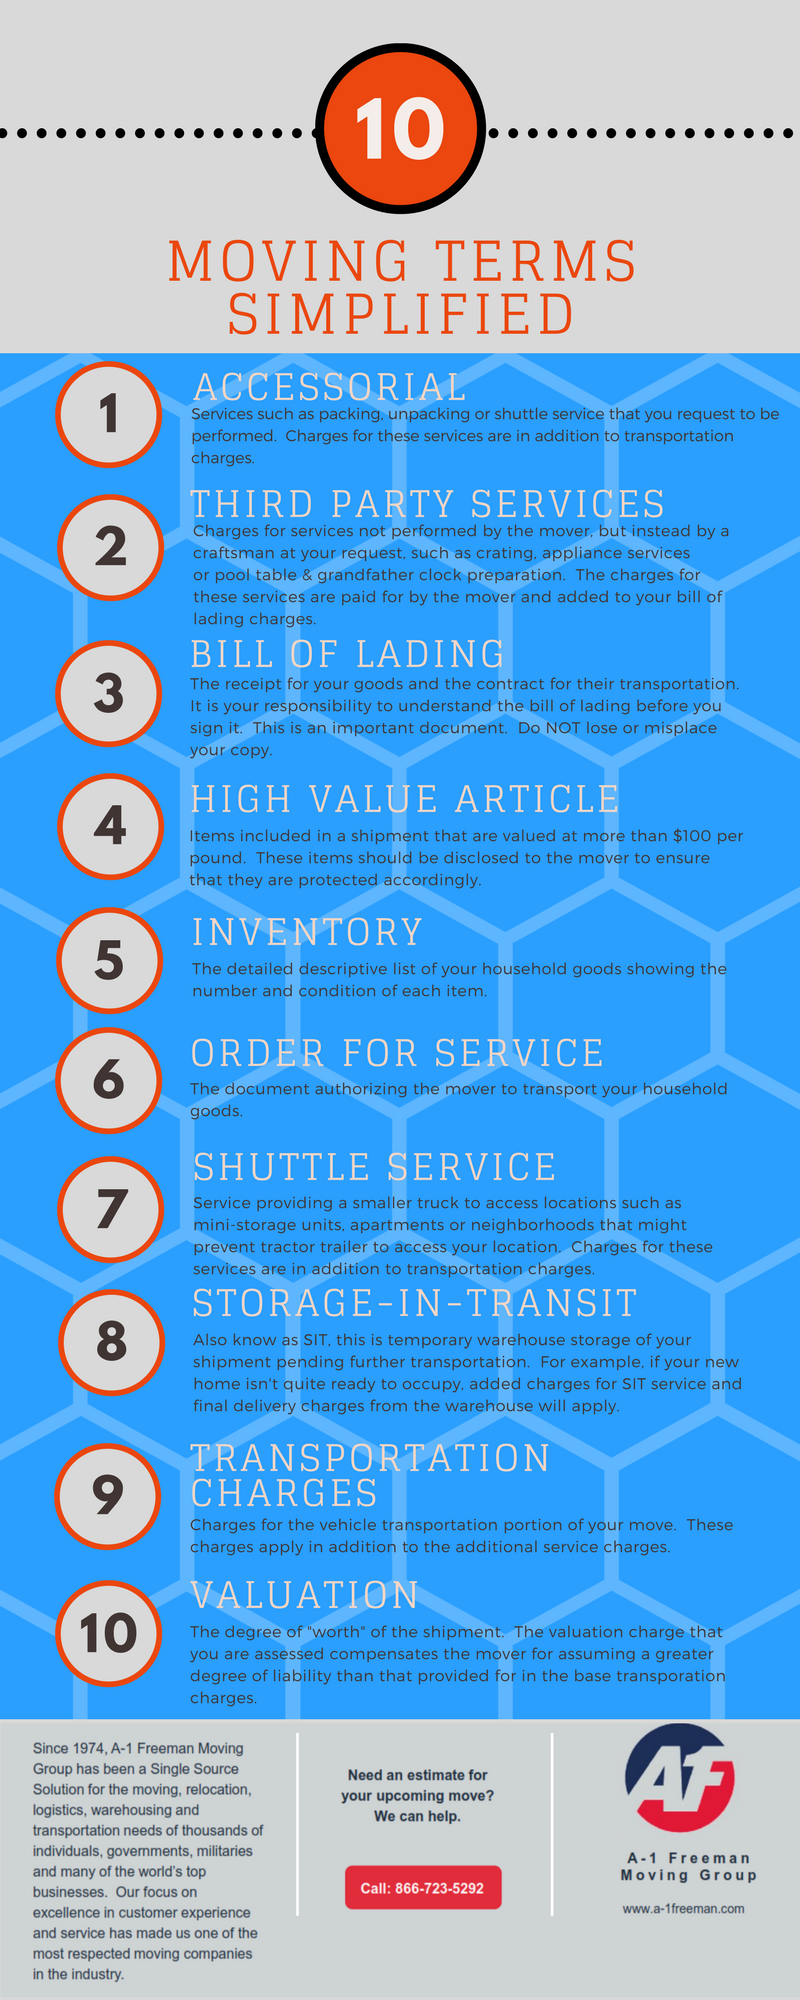 A-1 Freeman Moving Group Killeen Moving Terms Infographic